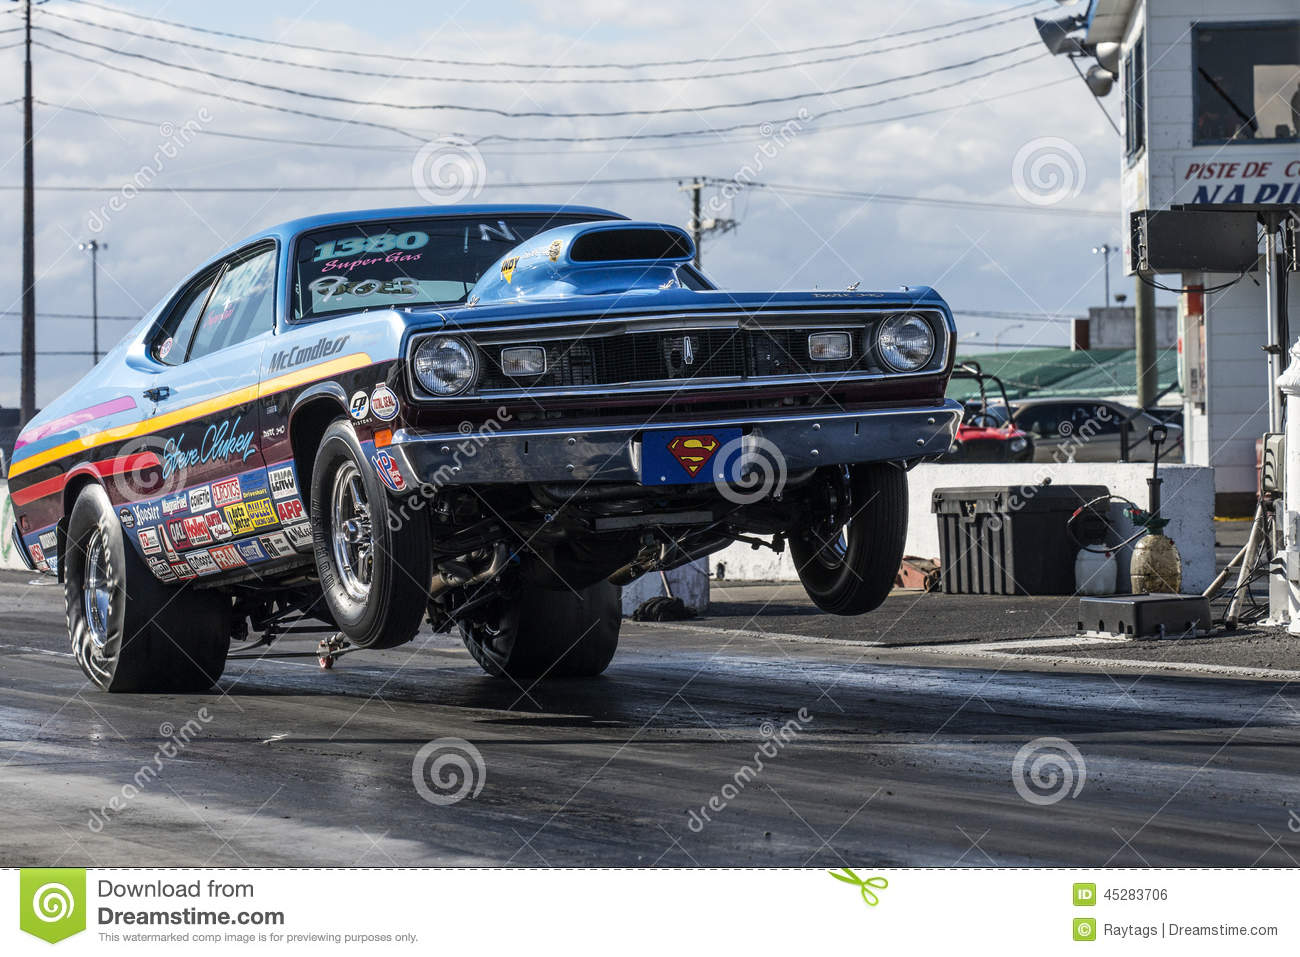 hight resolution of napierville september 13 2014 front side view vintage plymouth duster making a wheelie on the track during drag event